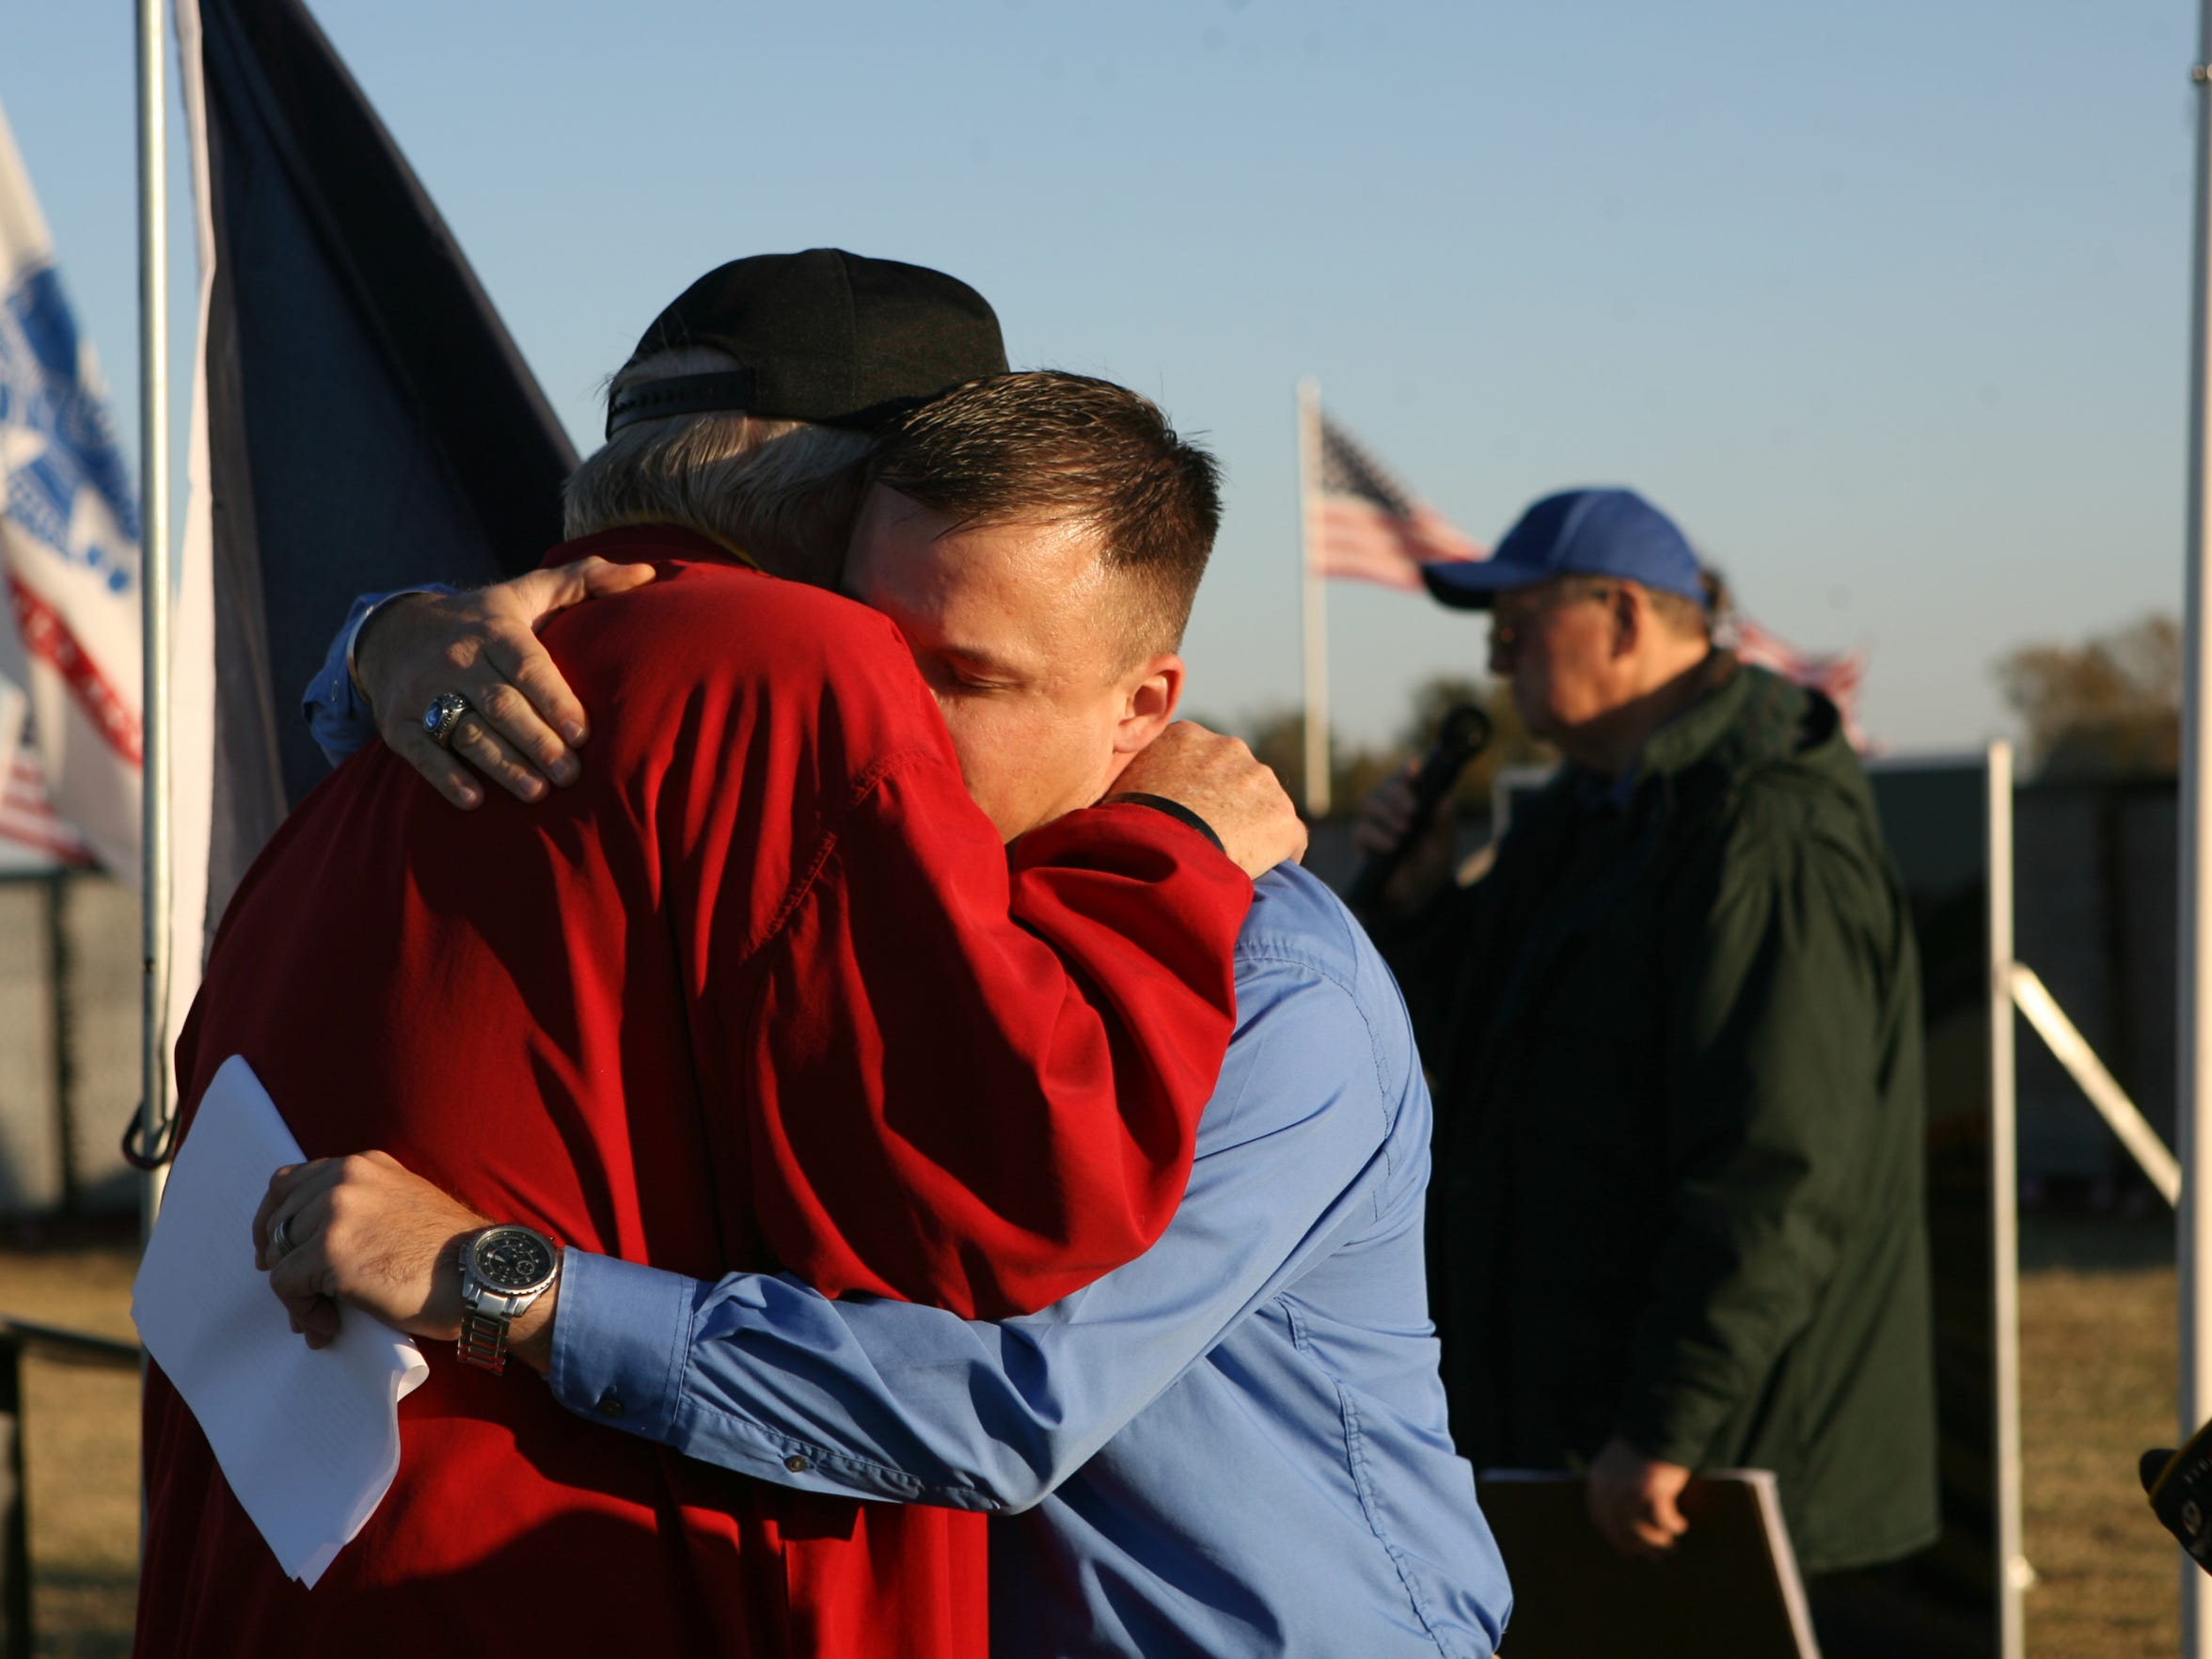 Ron Griggs, left, comforts Raymond Downs during the